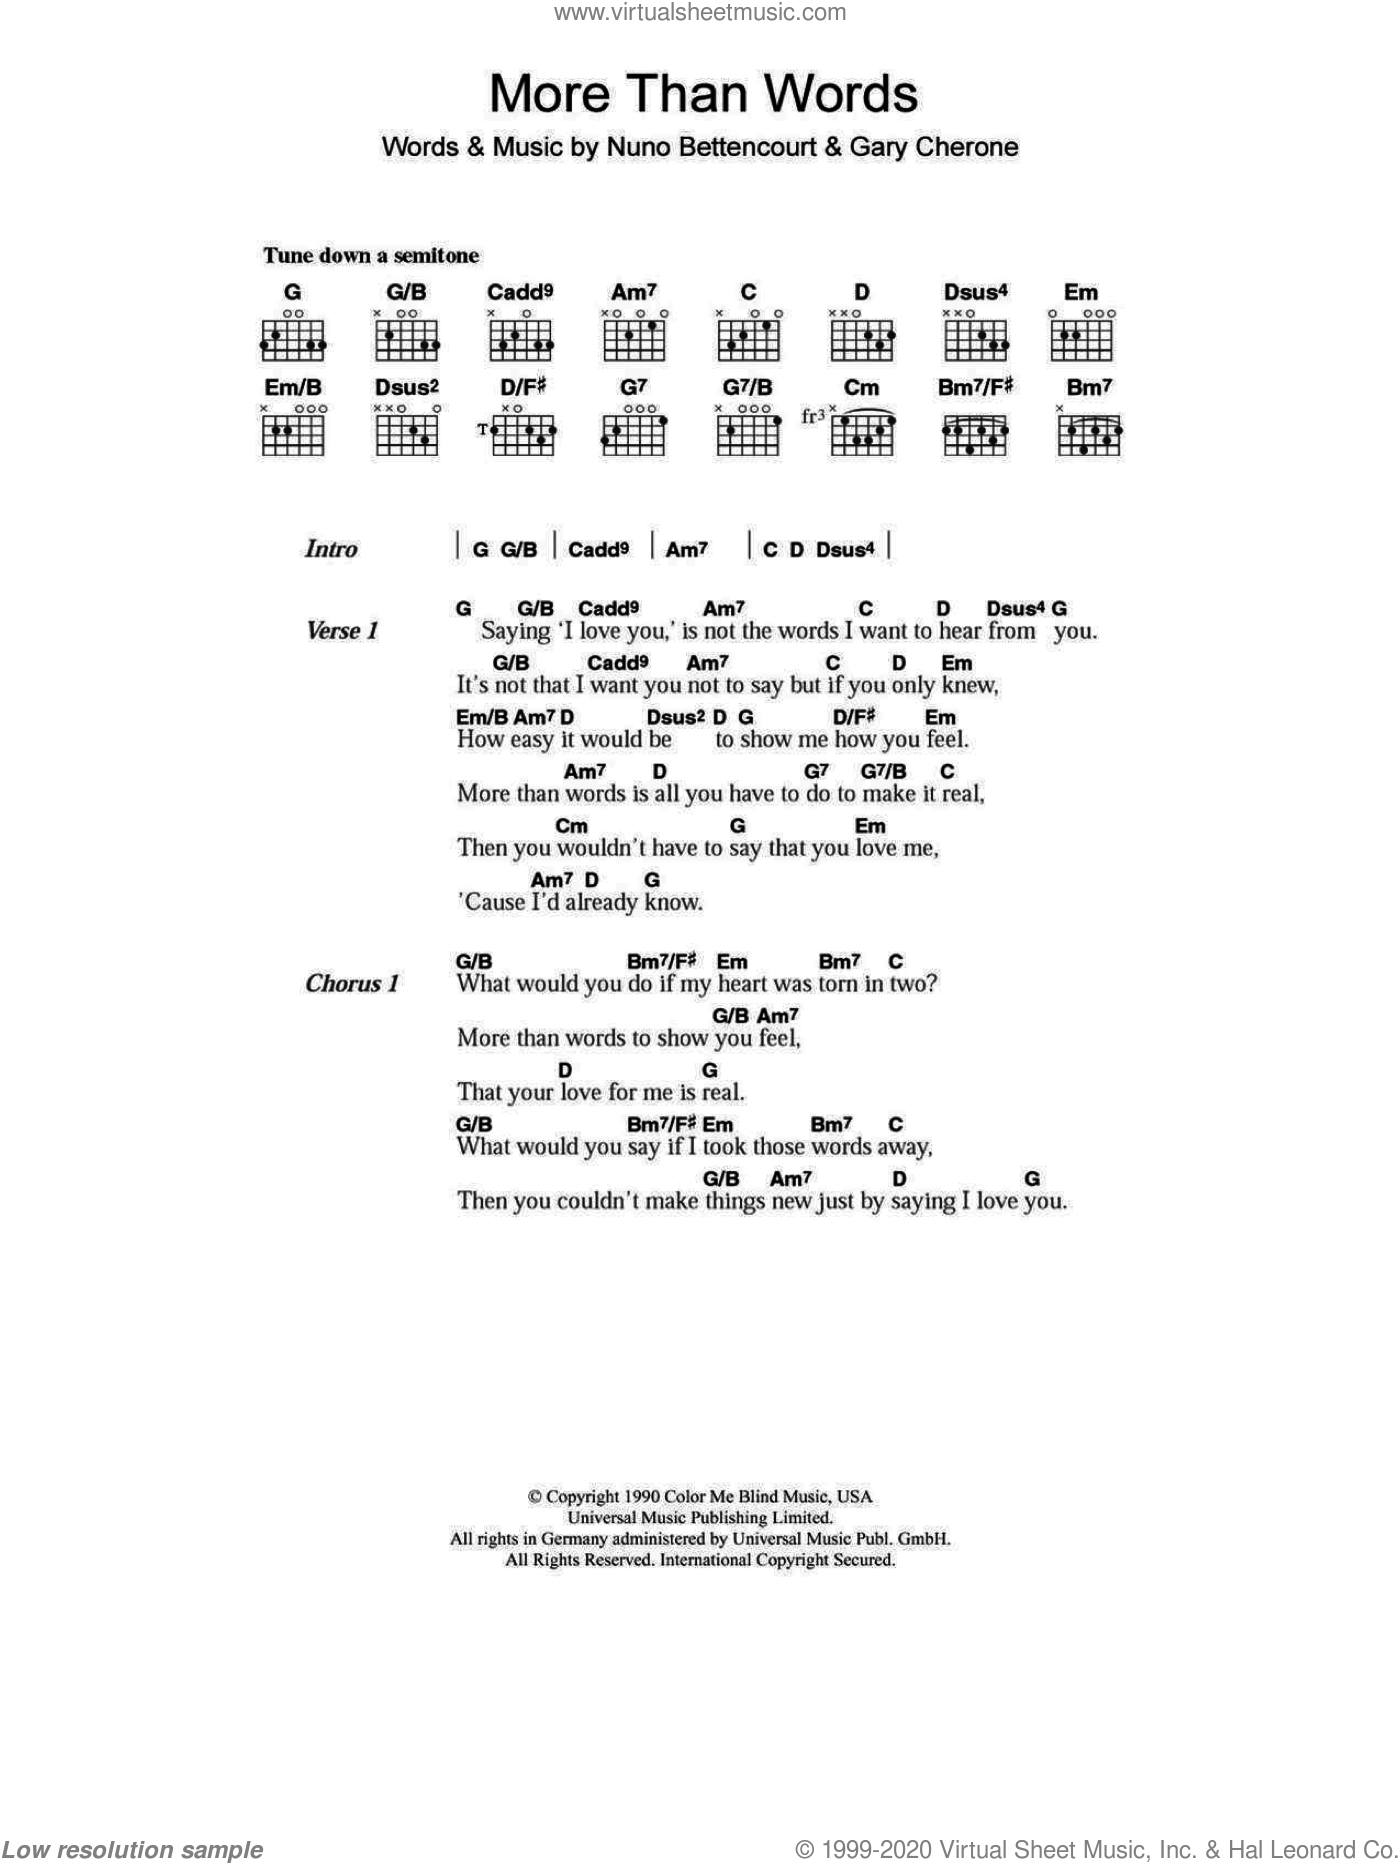 More Than Words sheet music for guitar (chords) by Nuno Bettencourt